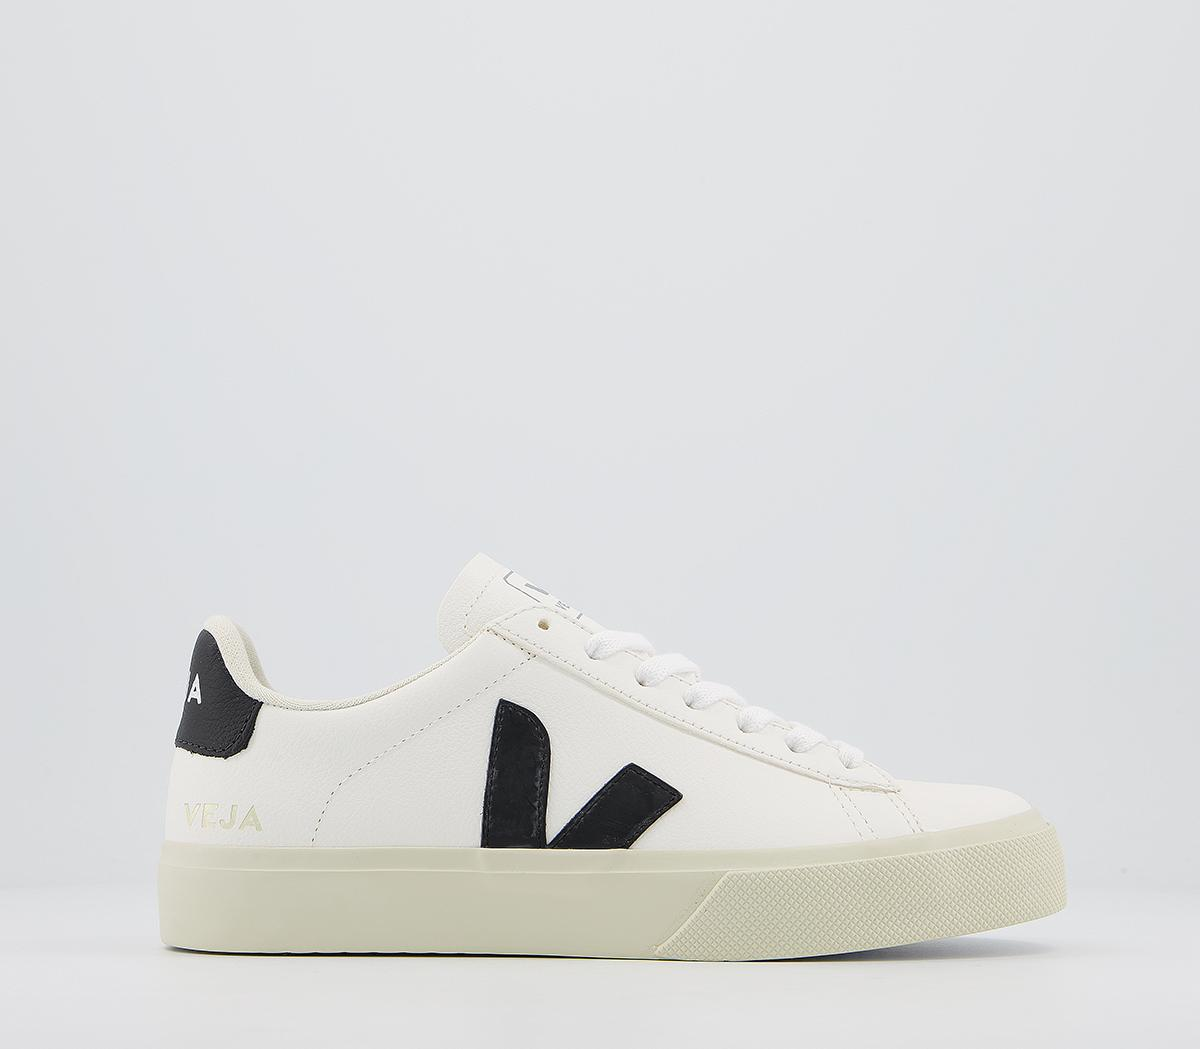 recinto Manifiesto sexual  Veja Campo Trainers White Black Leather F - Hers trainers